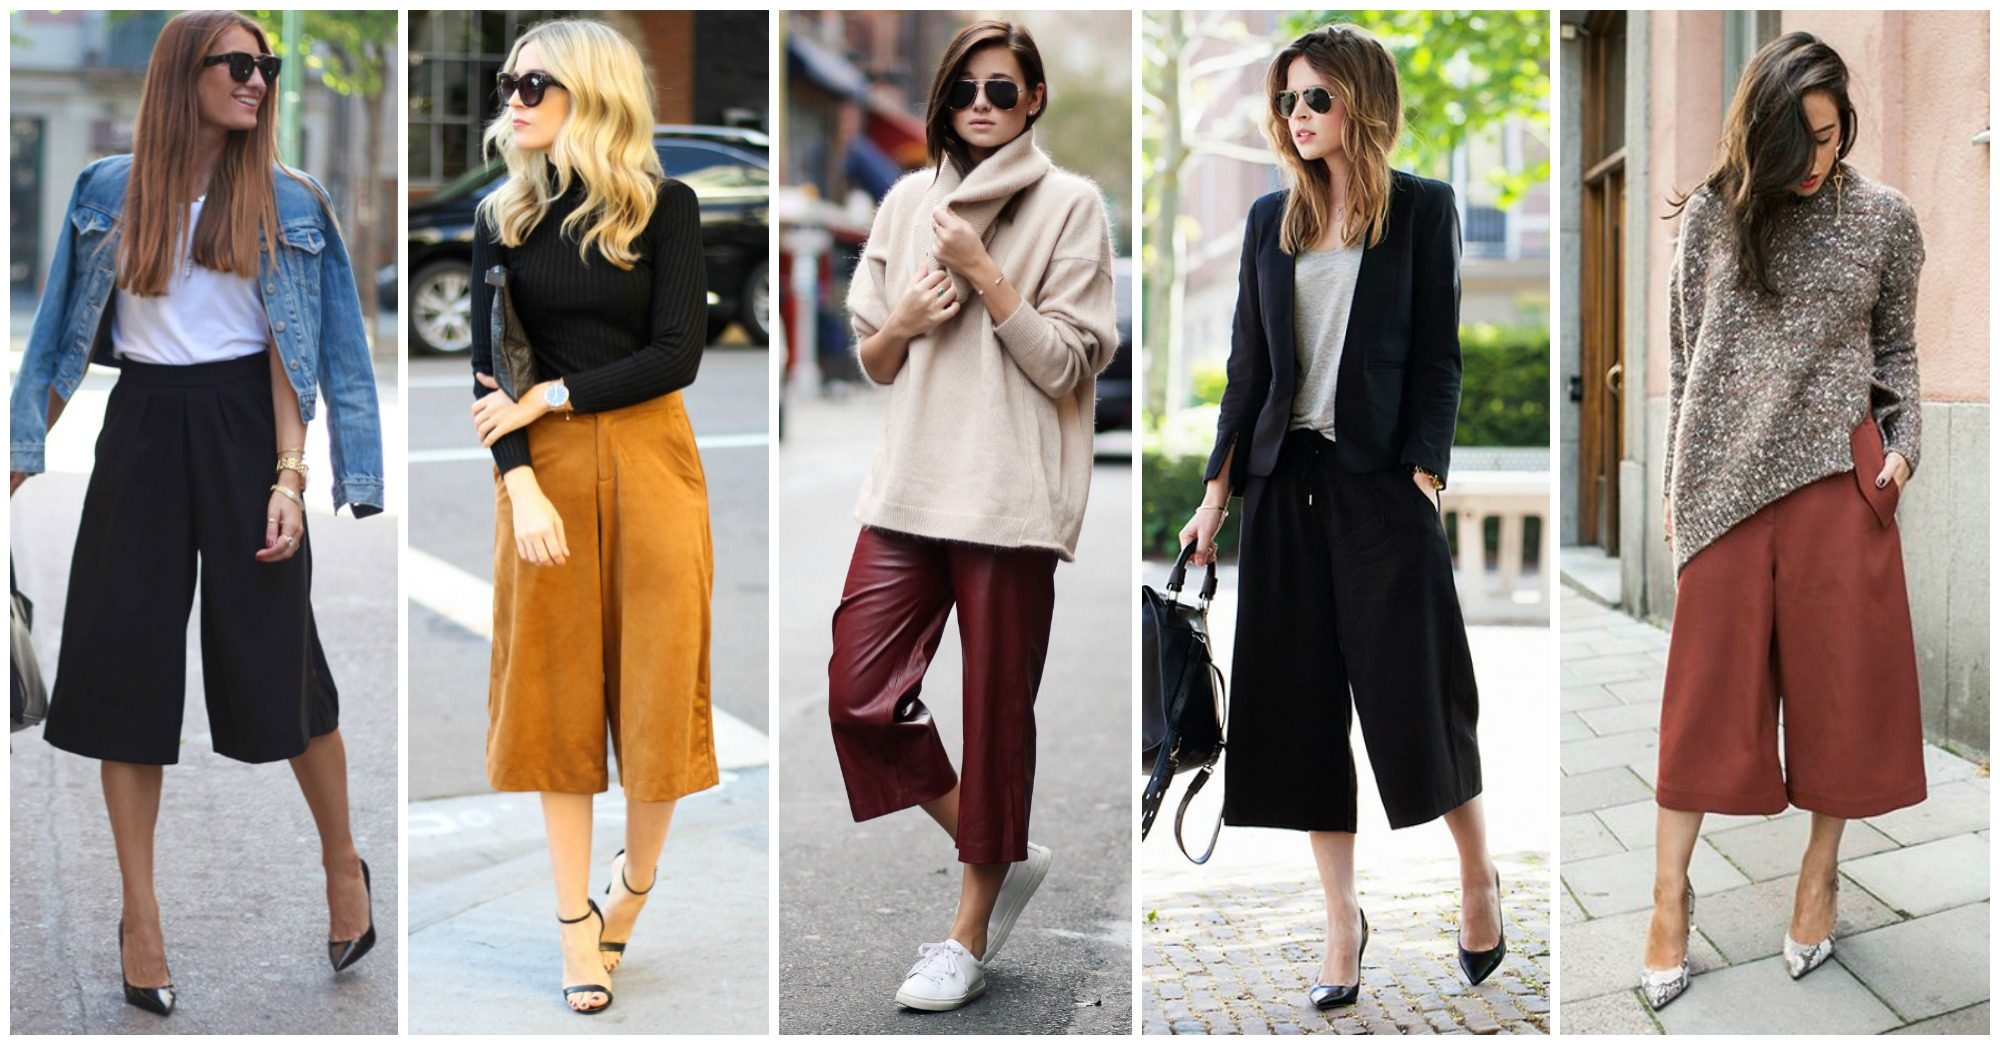 18 Stylish Ways to Wear Culottes This Fall